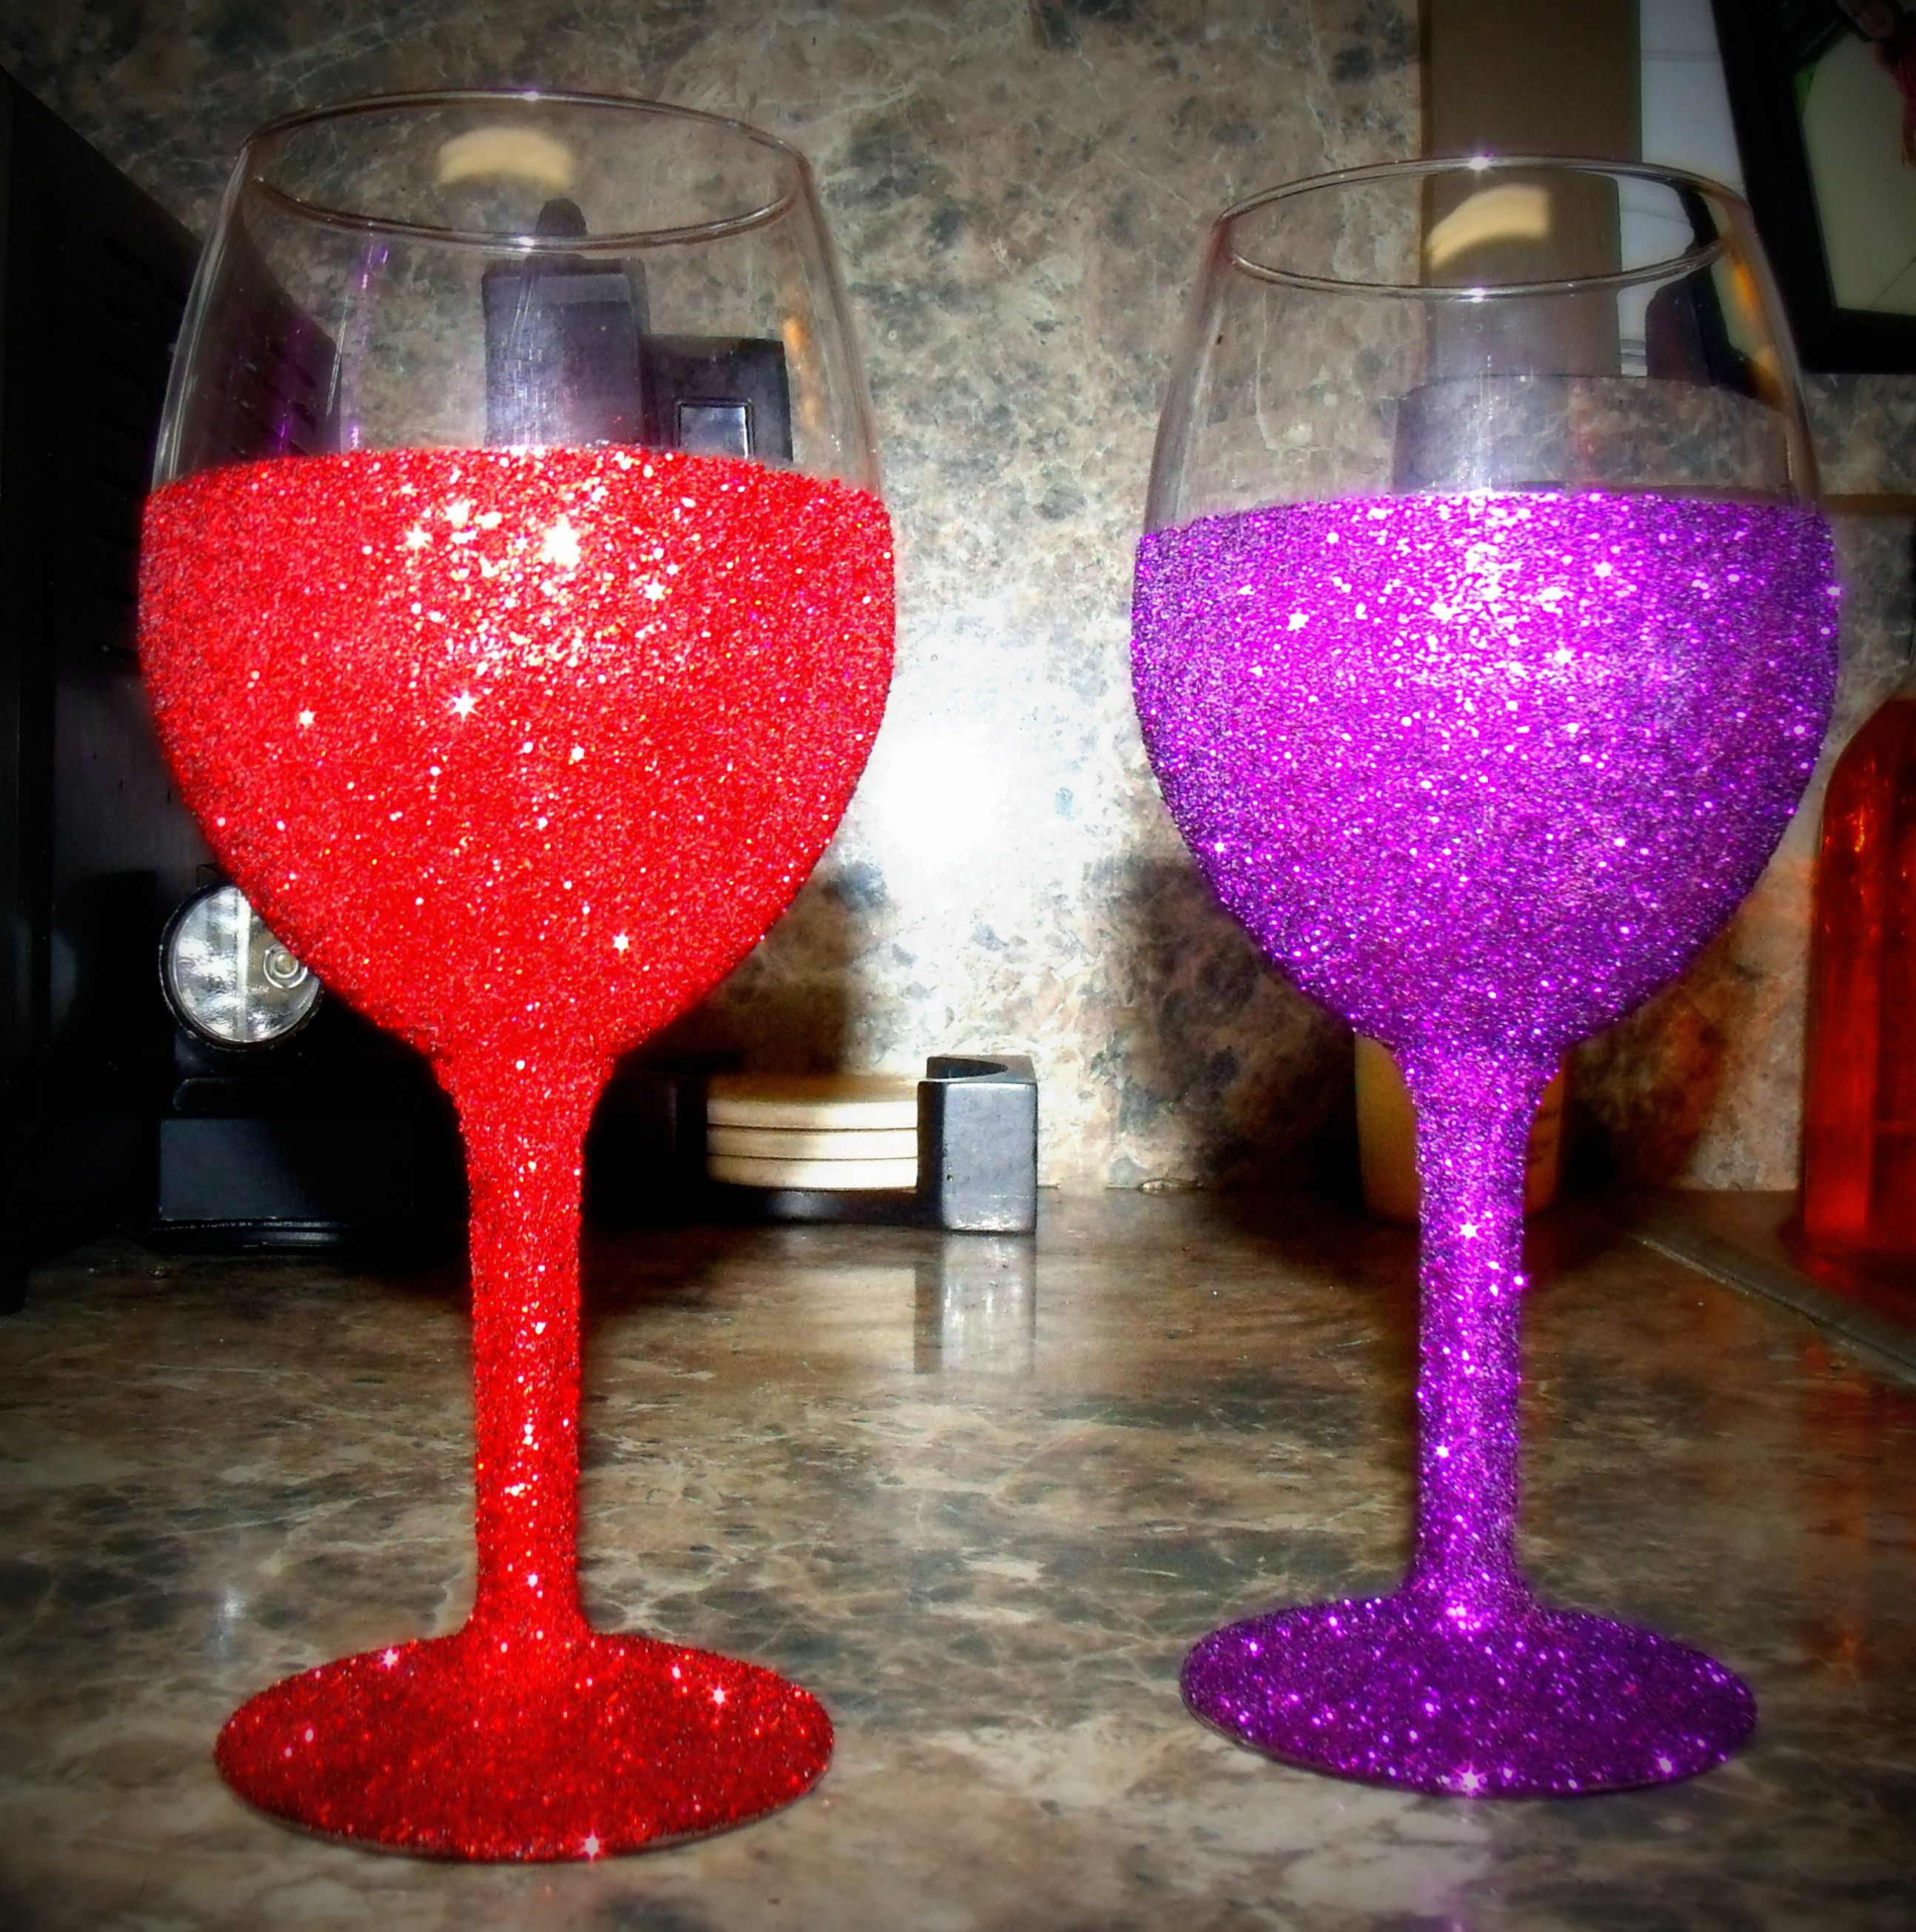 Pin By Paige Soza On Feeling Crafty Glitter Wine Glasses Diy Glitter Wine Diy Wine Glasses